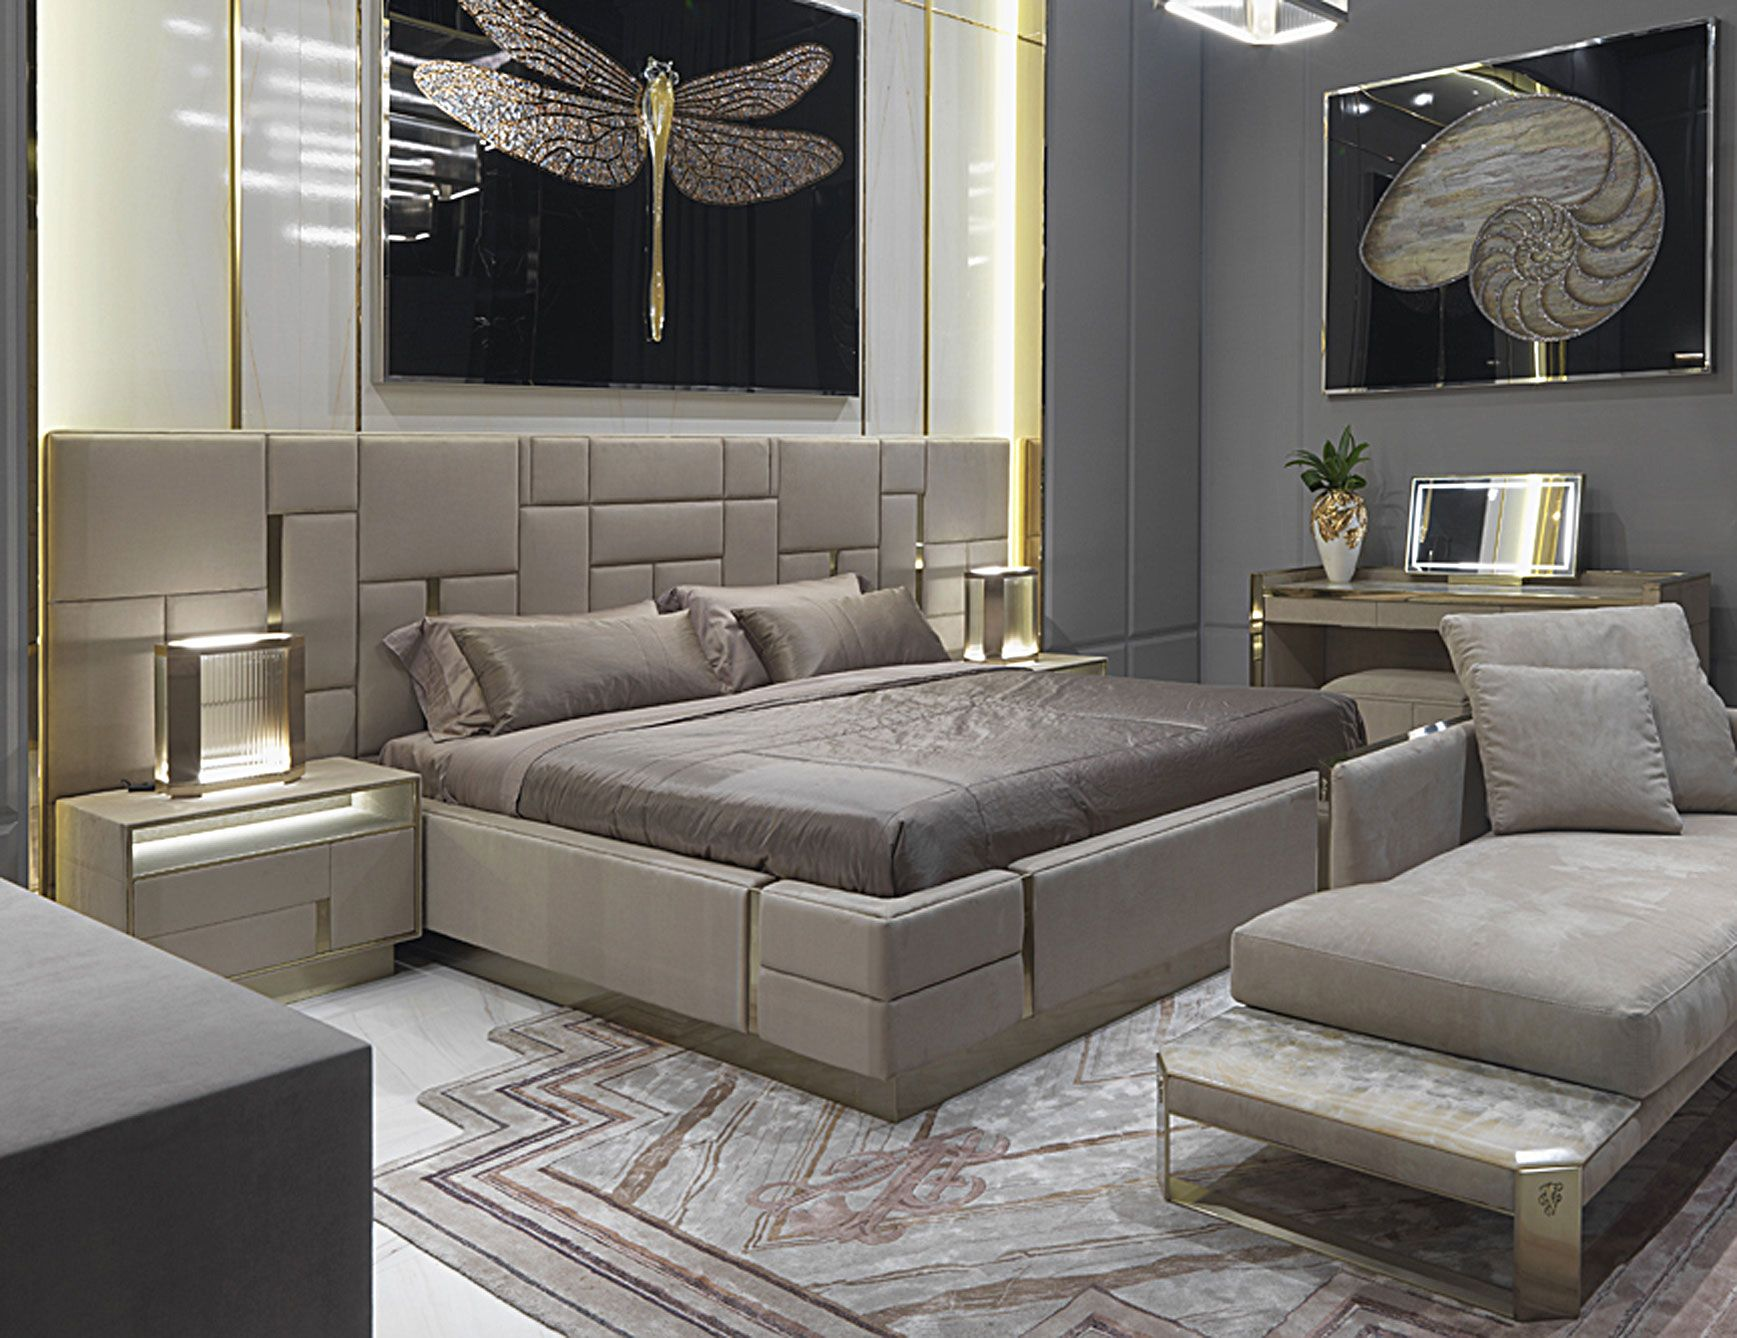 Beloved Large Luxury Italian Bed Shown In Upholstered Leather With Golden Lacquered Finish Finishe Bedroom Furniture Design Bed Design Modern Bedroom Interior